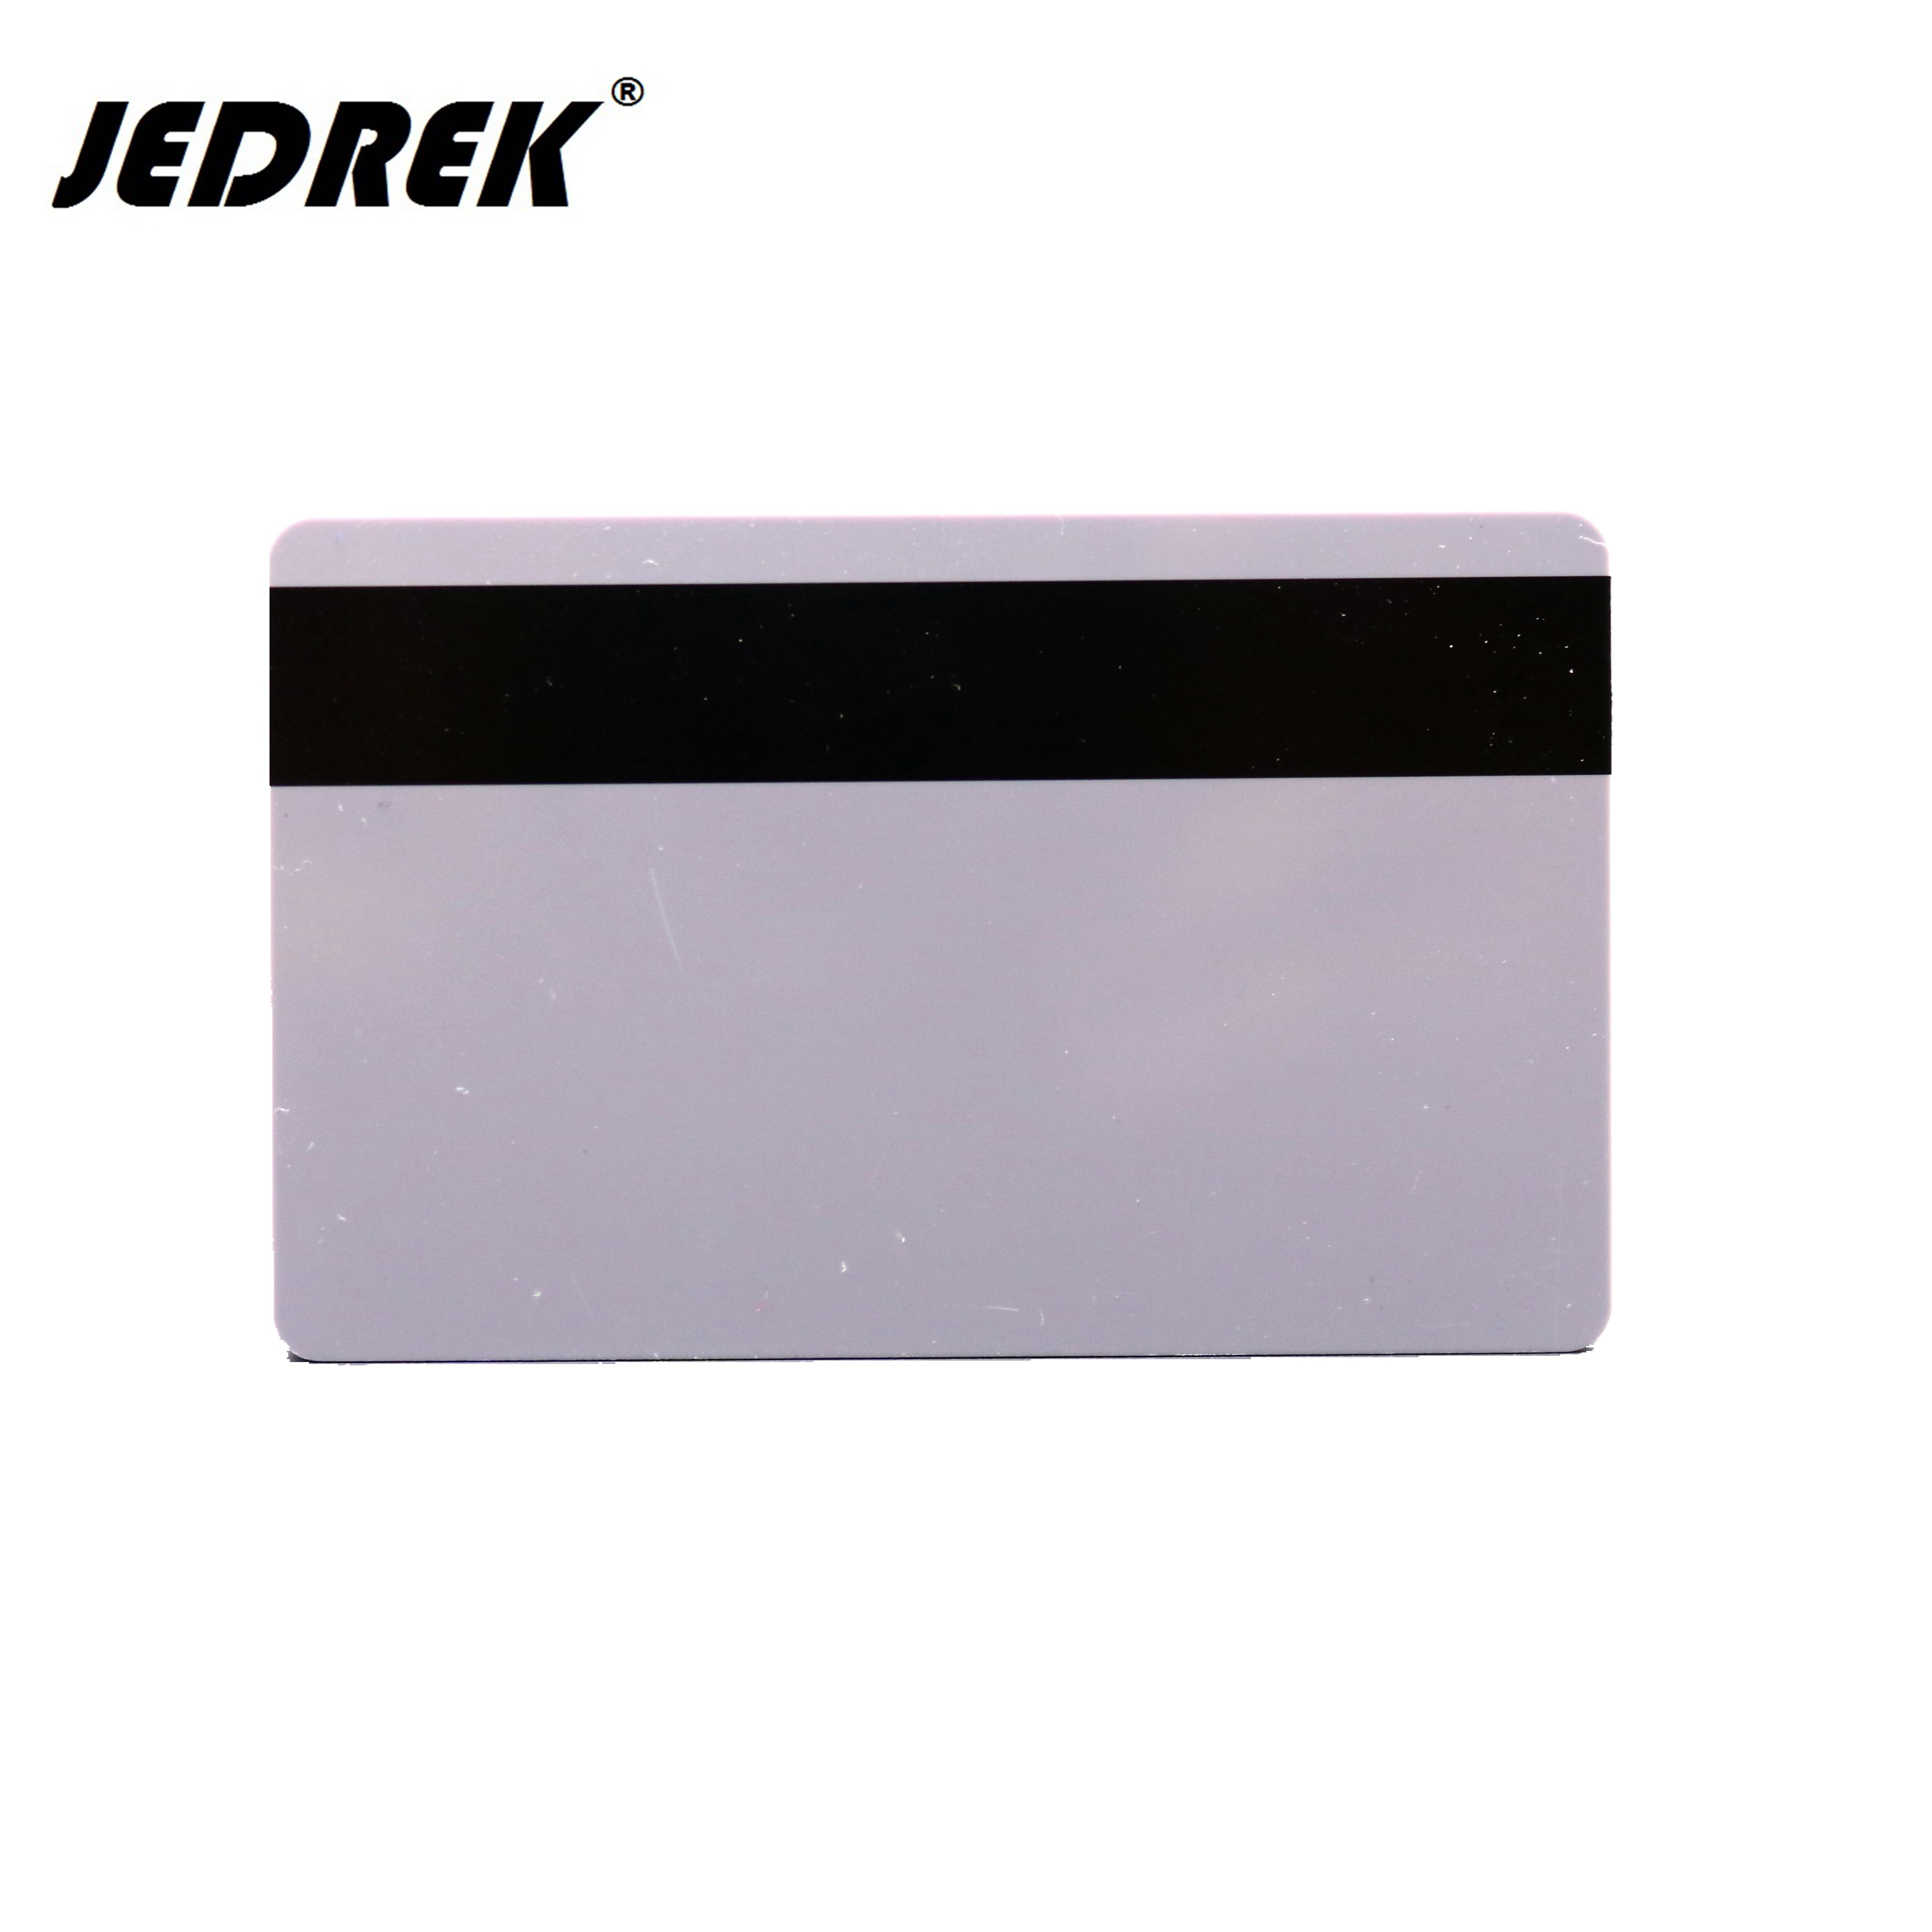 Blank PVC Magnetic Stripe Card 2750 OE Hi-Co 3 Track Magnetic Card Support High Resistance